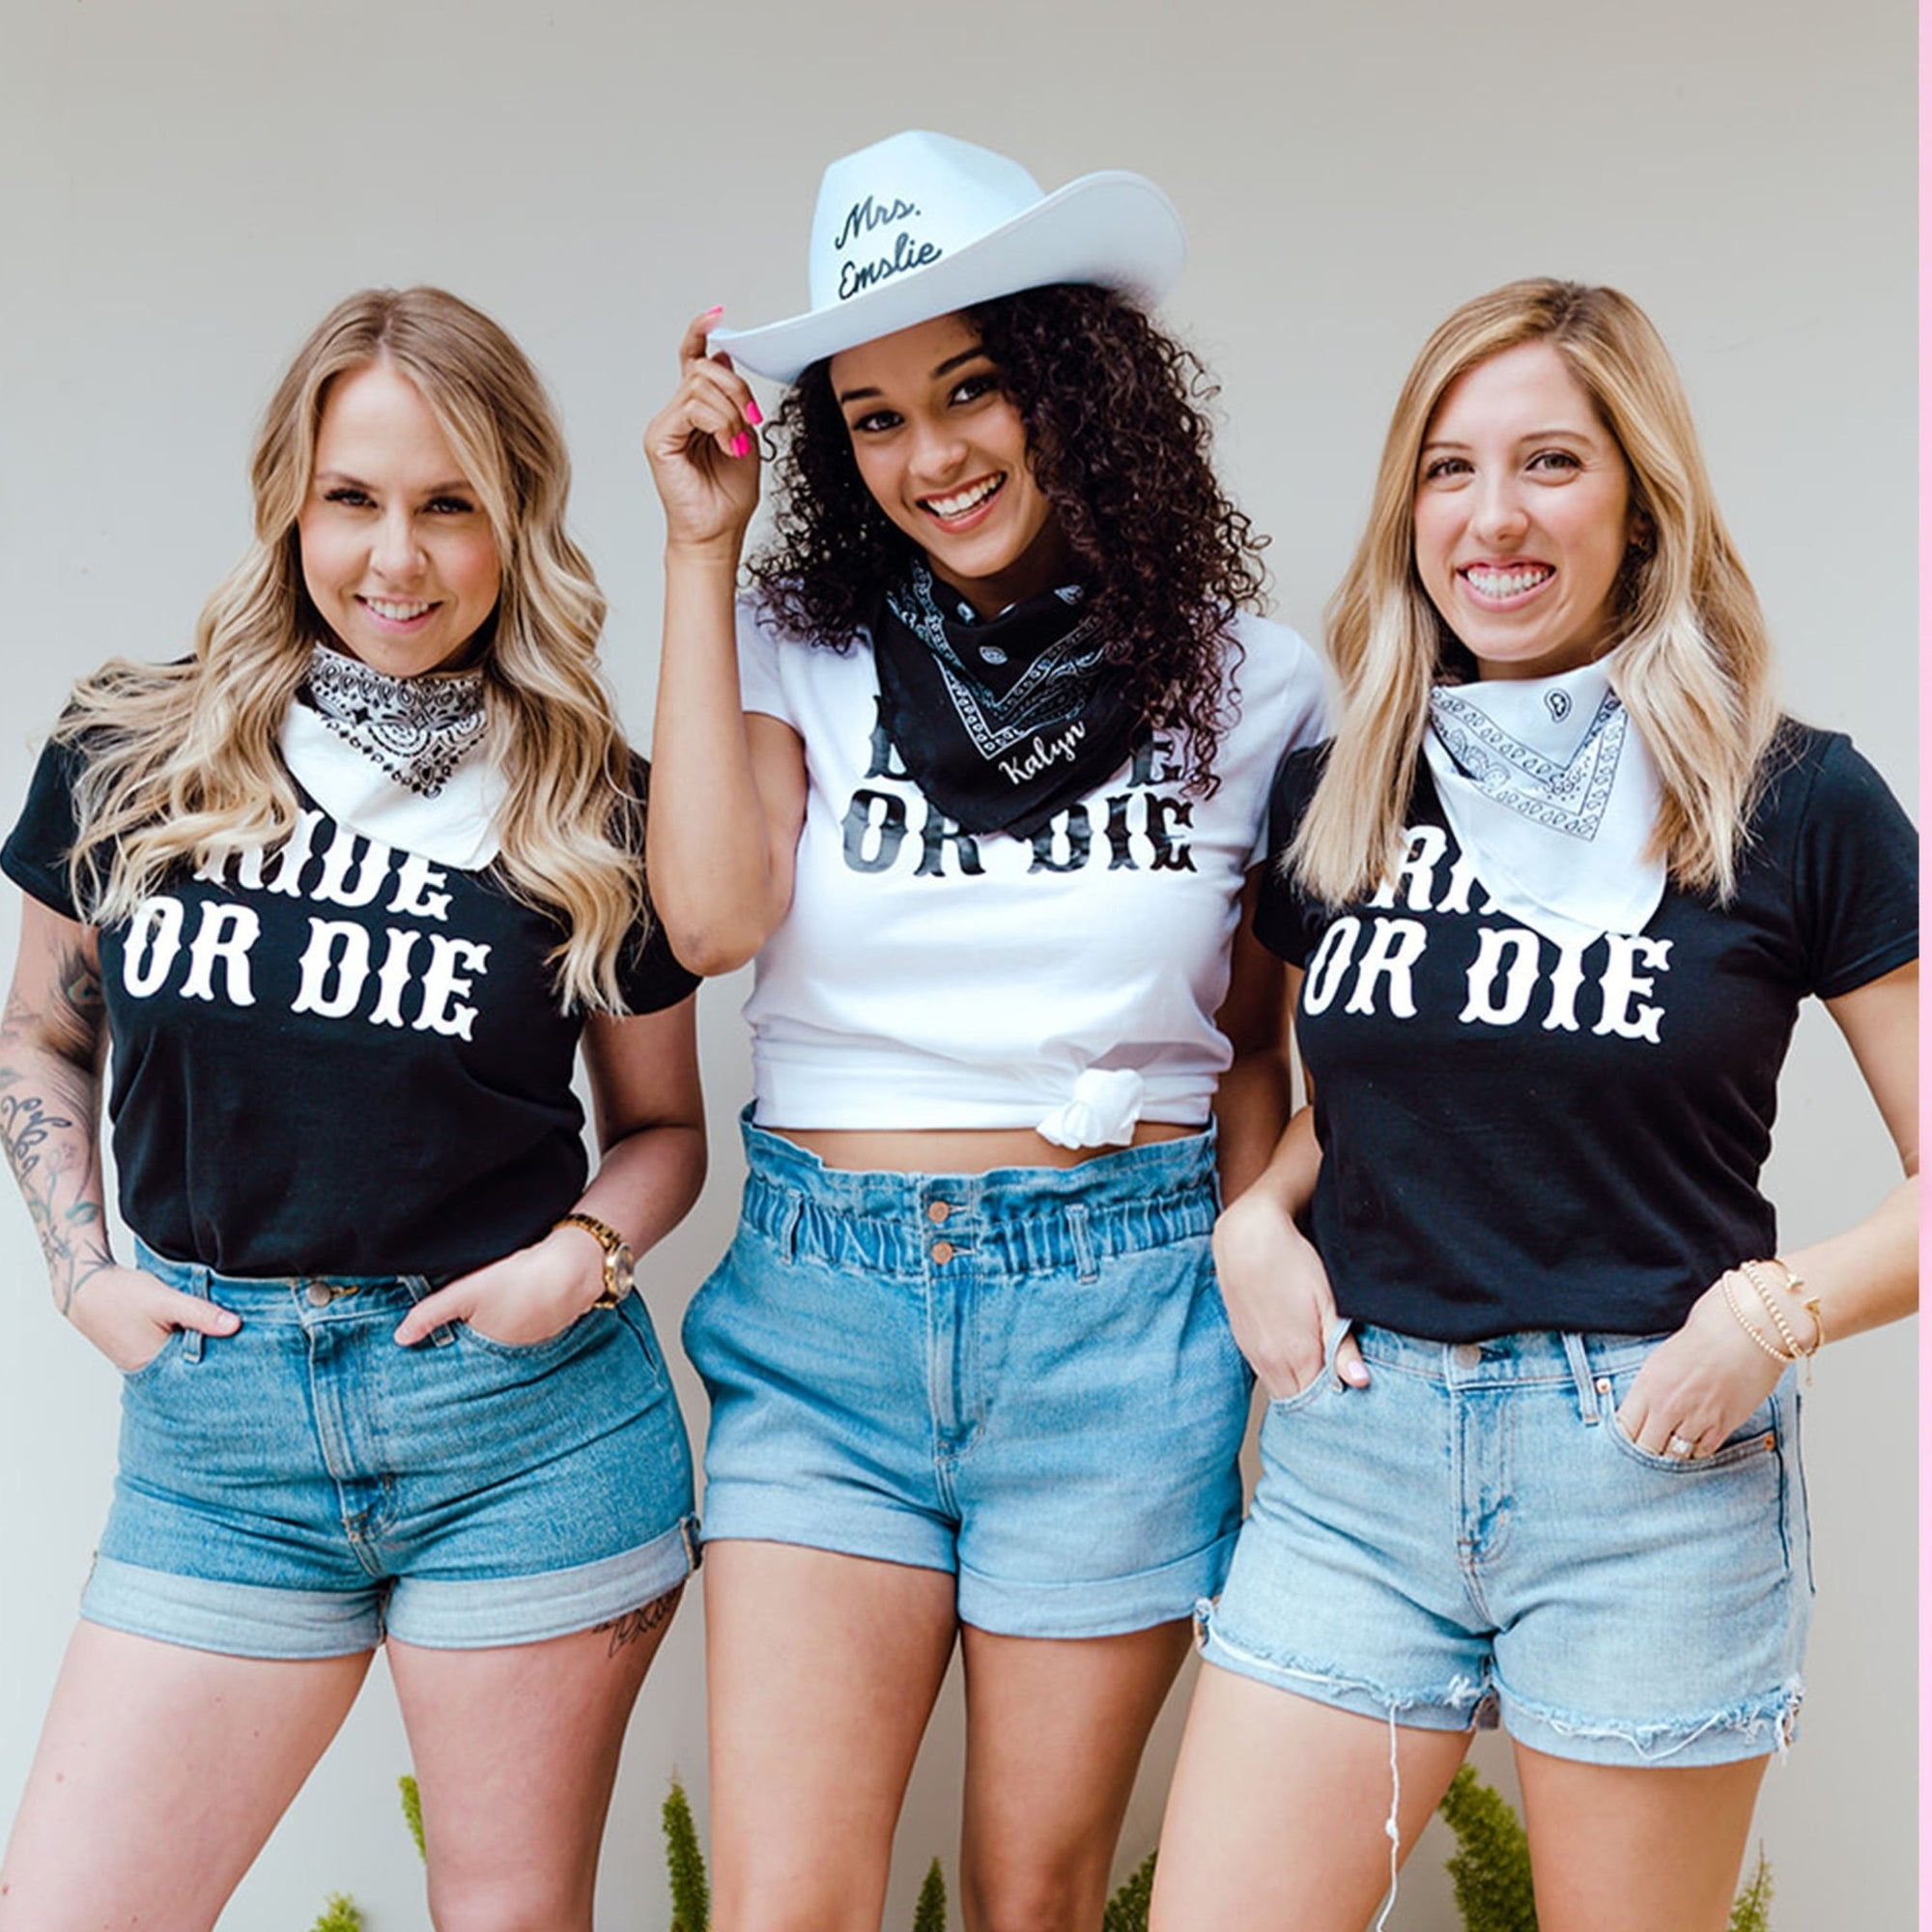 Ride or Die Shirt - Sprinkled With Pink #bachelorette #custom #gifts